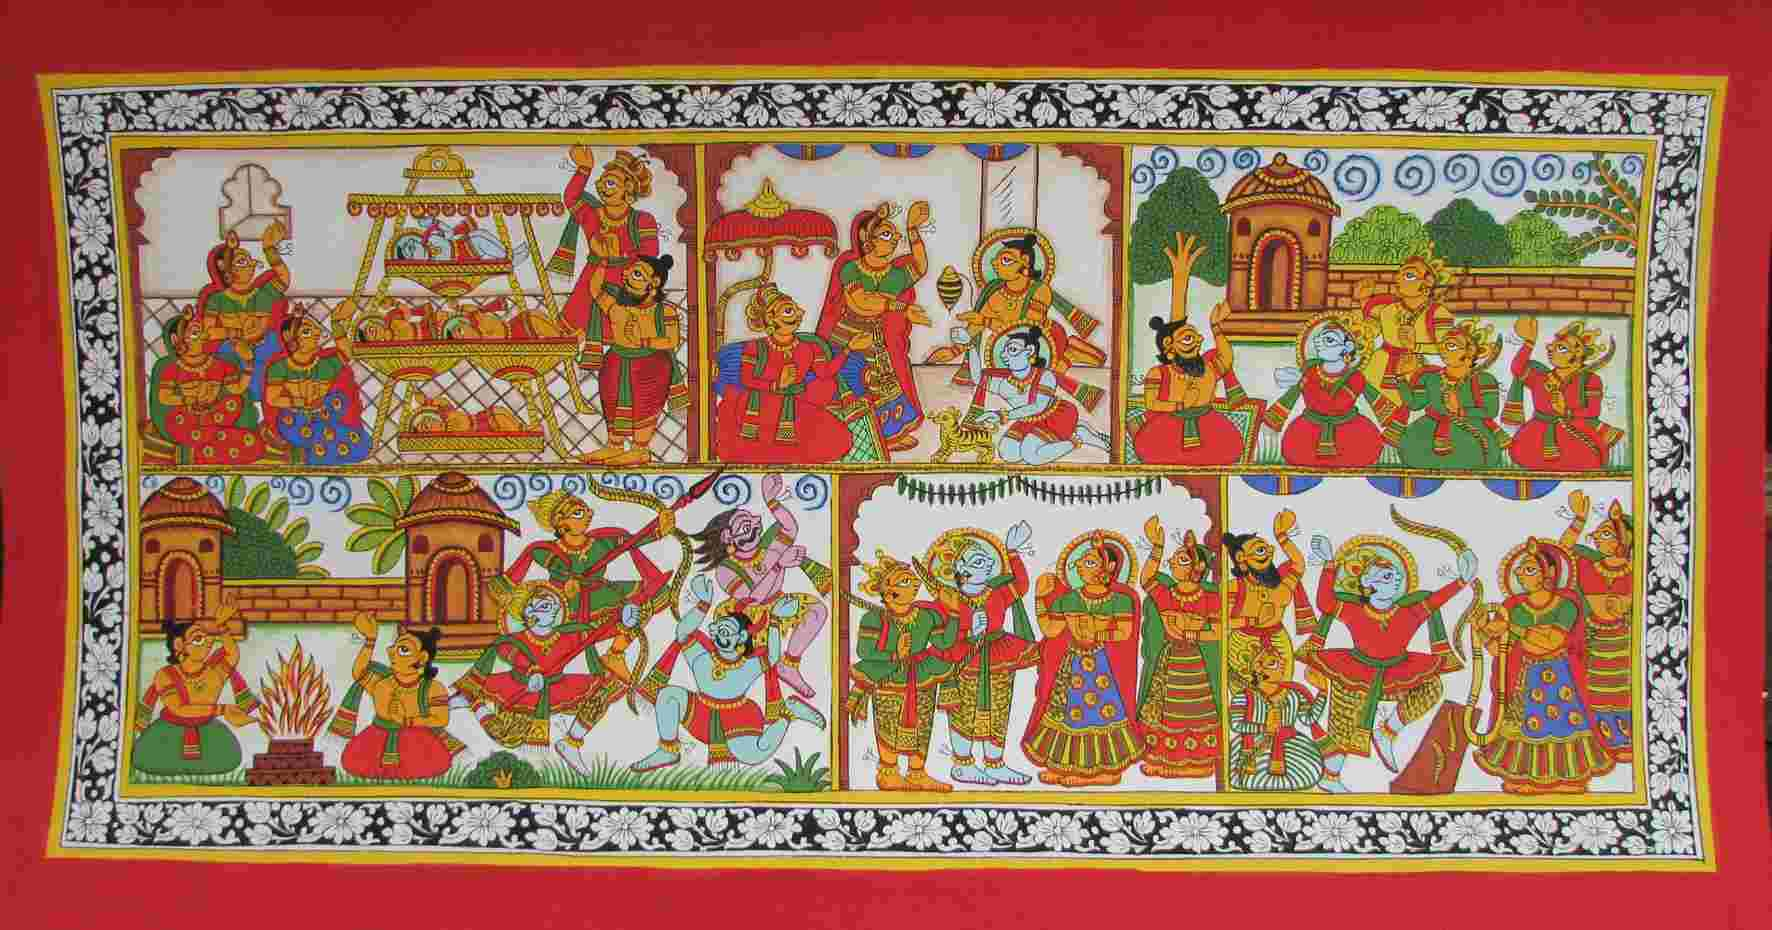 phad painting - art forms of India